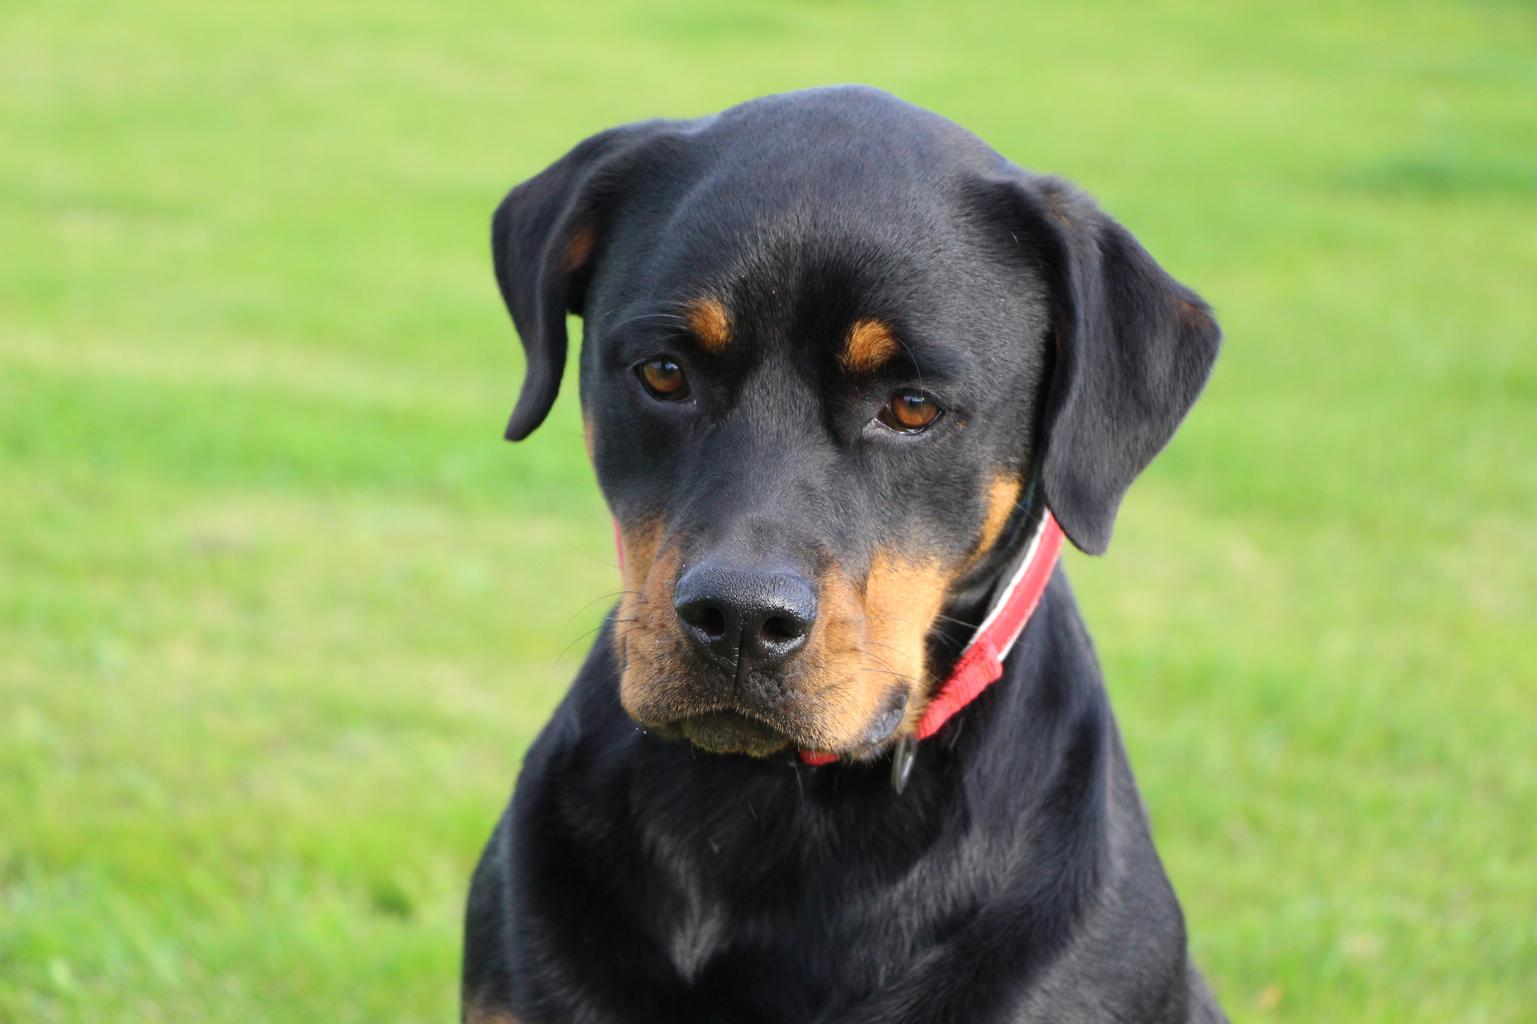 """The RSPCA has launched a special fundraising appeal to pay for emergency surgery for Paris, a rottweiler who has been living in """"excruciating pain"""" for most of her short life. Tags: appeal charity fundraising help Rottweiler RSPCA"""